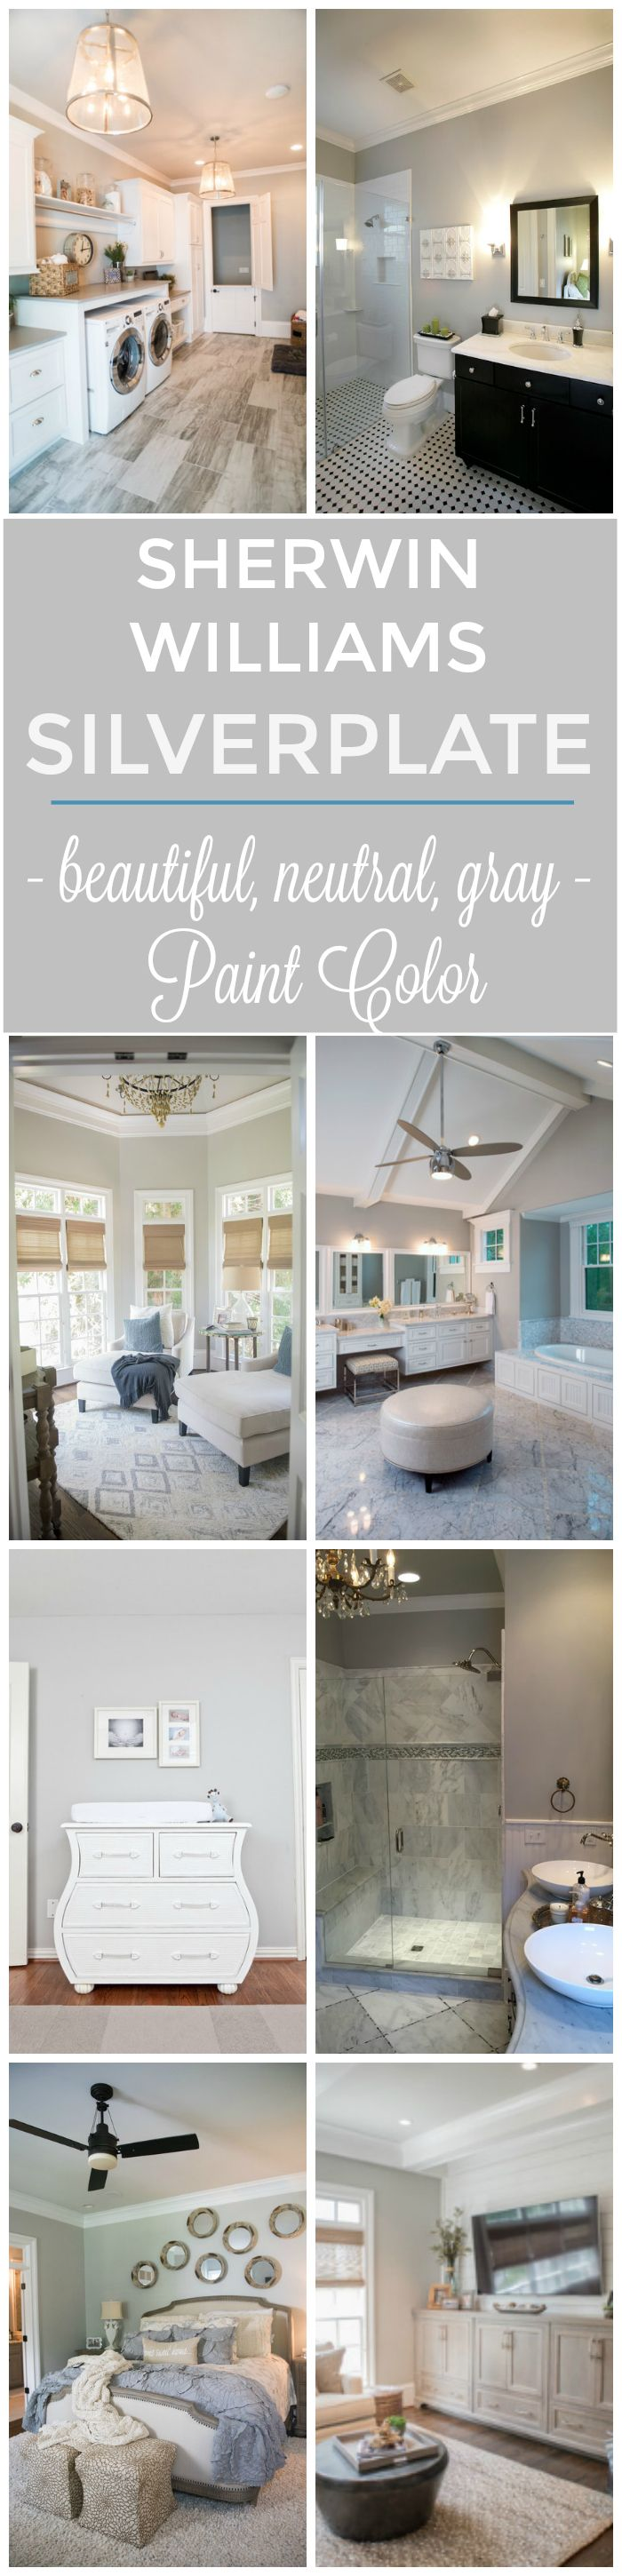 422 best Paint Colors images on Pinterest